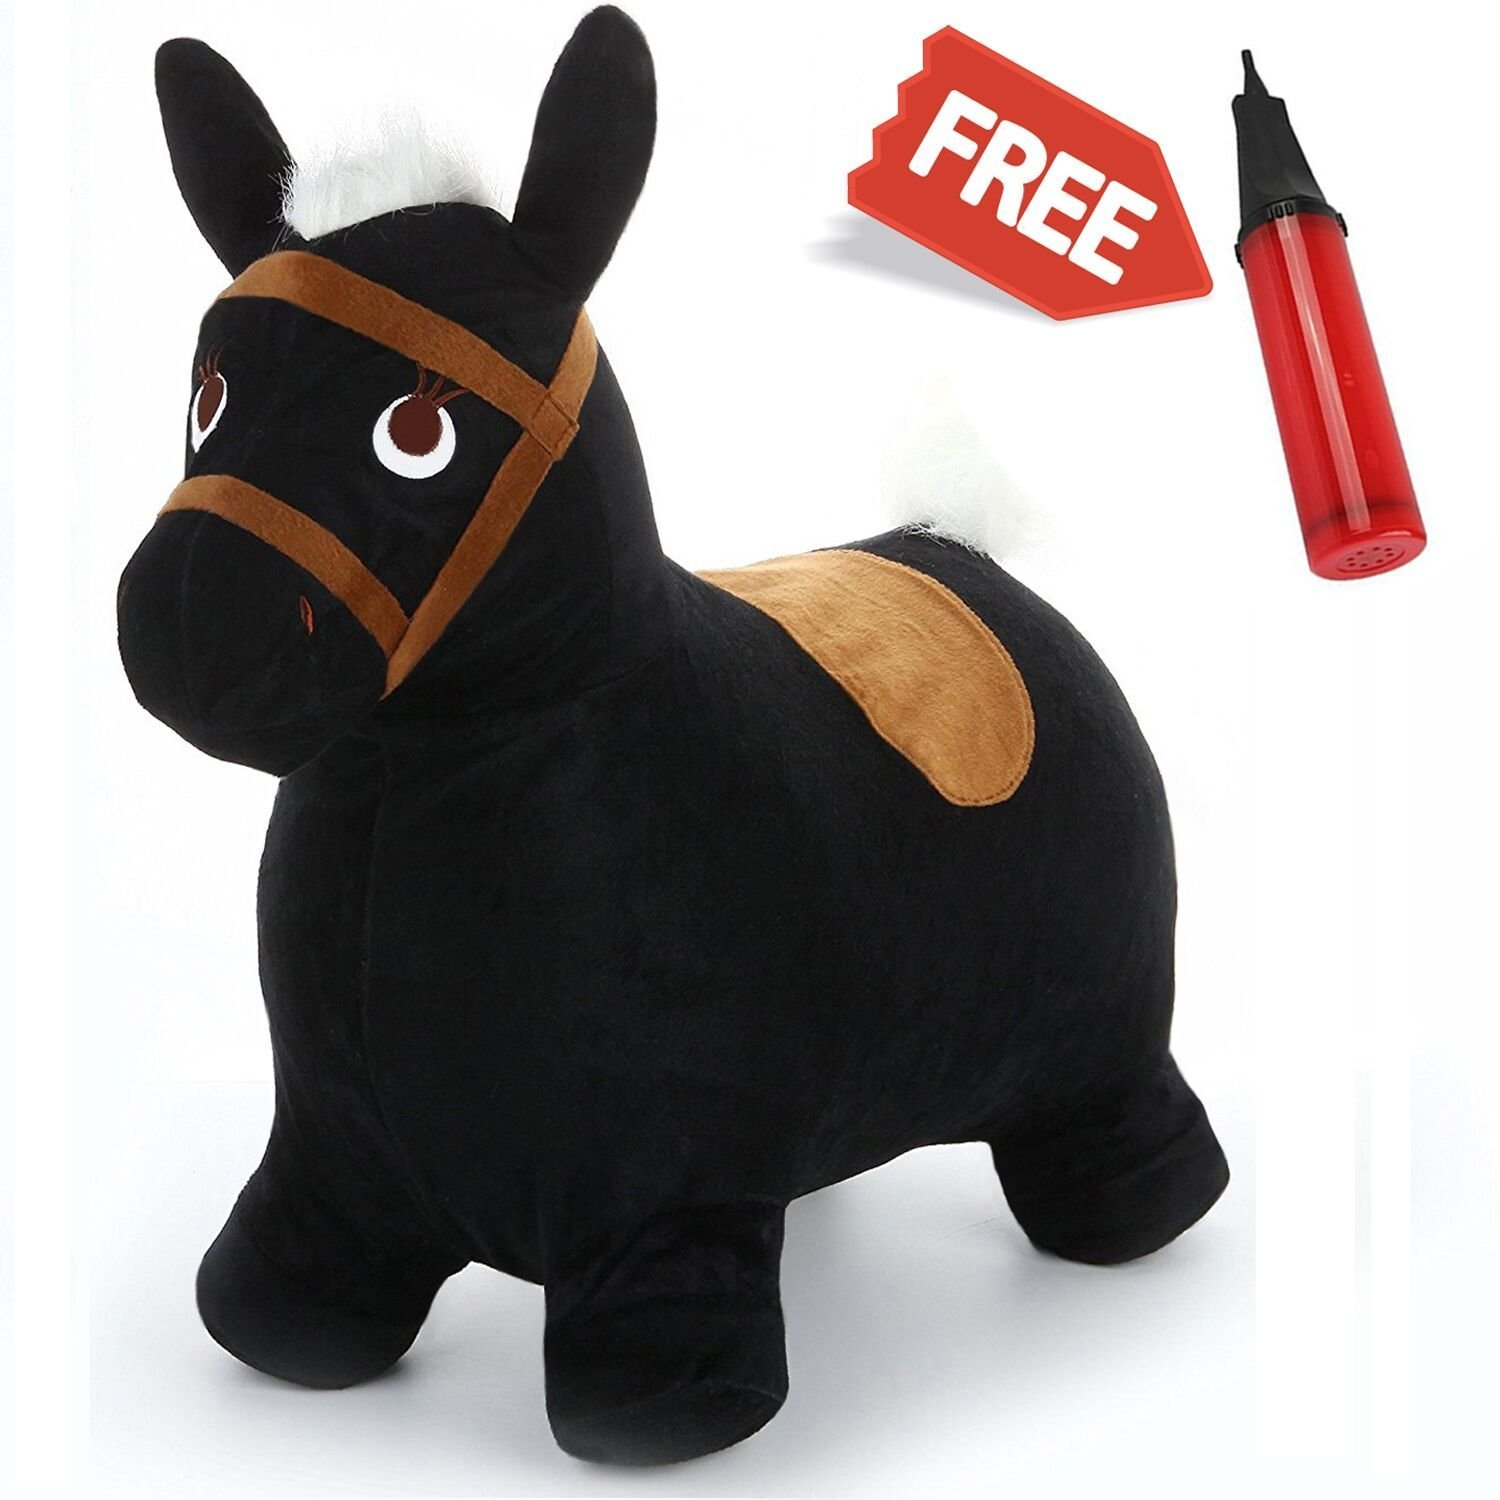 iPlay, iLearn Bouncy Horse Ride On Toy, Black Plush Hopping Inflatable Hopper, Pump Free Outdoor Animal Jumping, Balance Games Toys Gift For Ages 2, 3, 4, 5 Year Olds Kids Toddlers Boys Girls